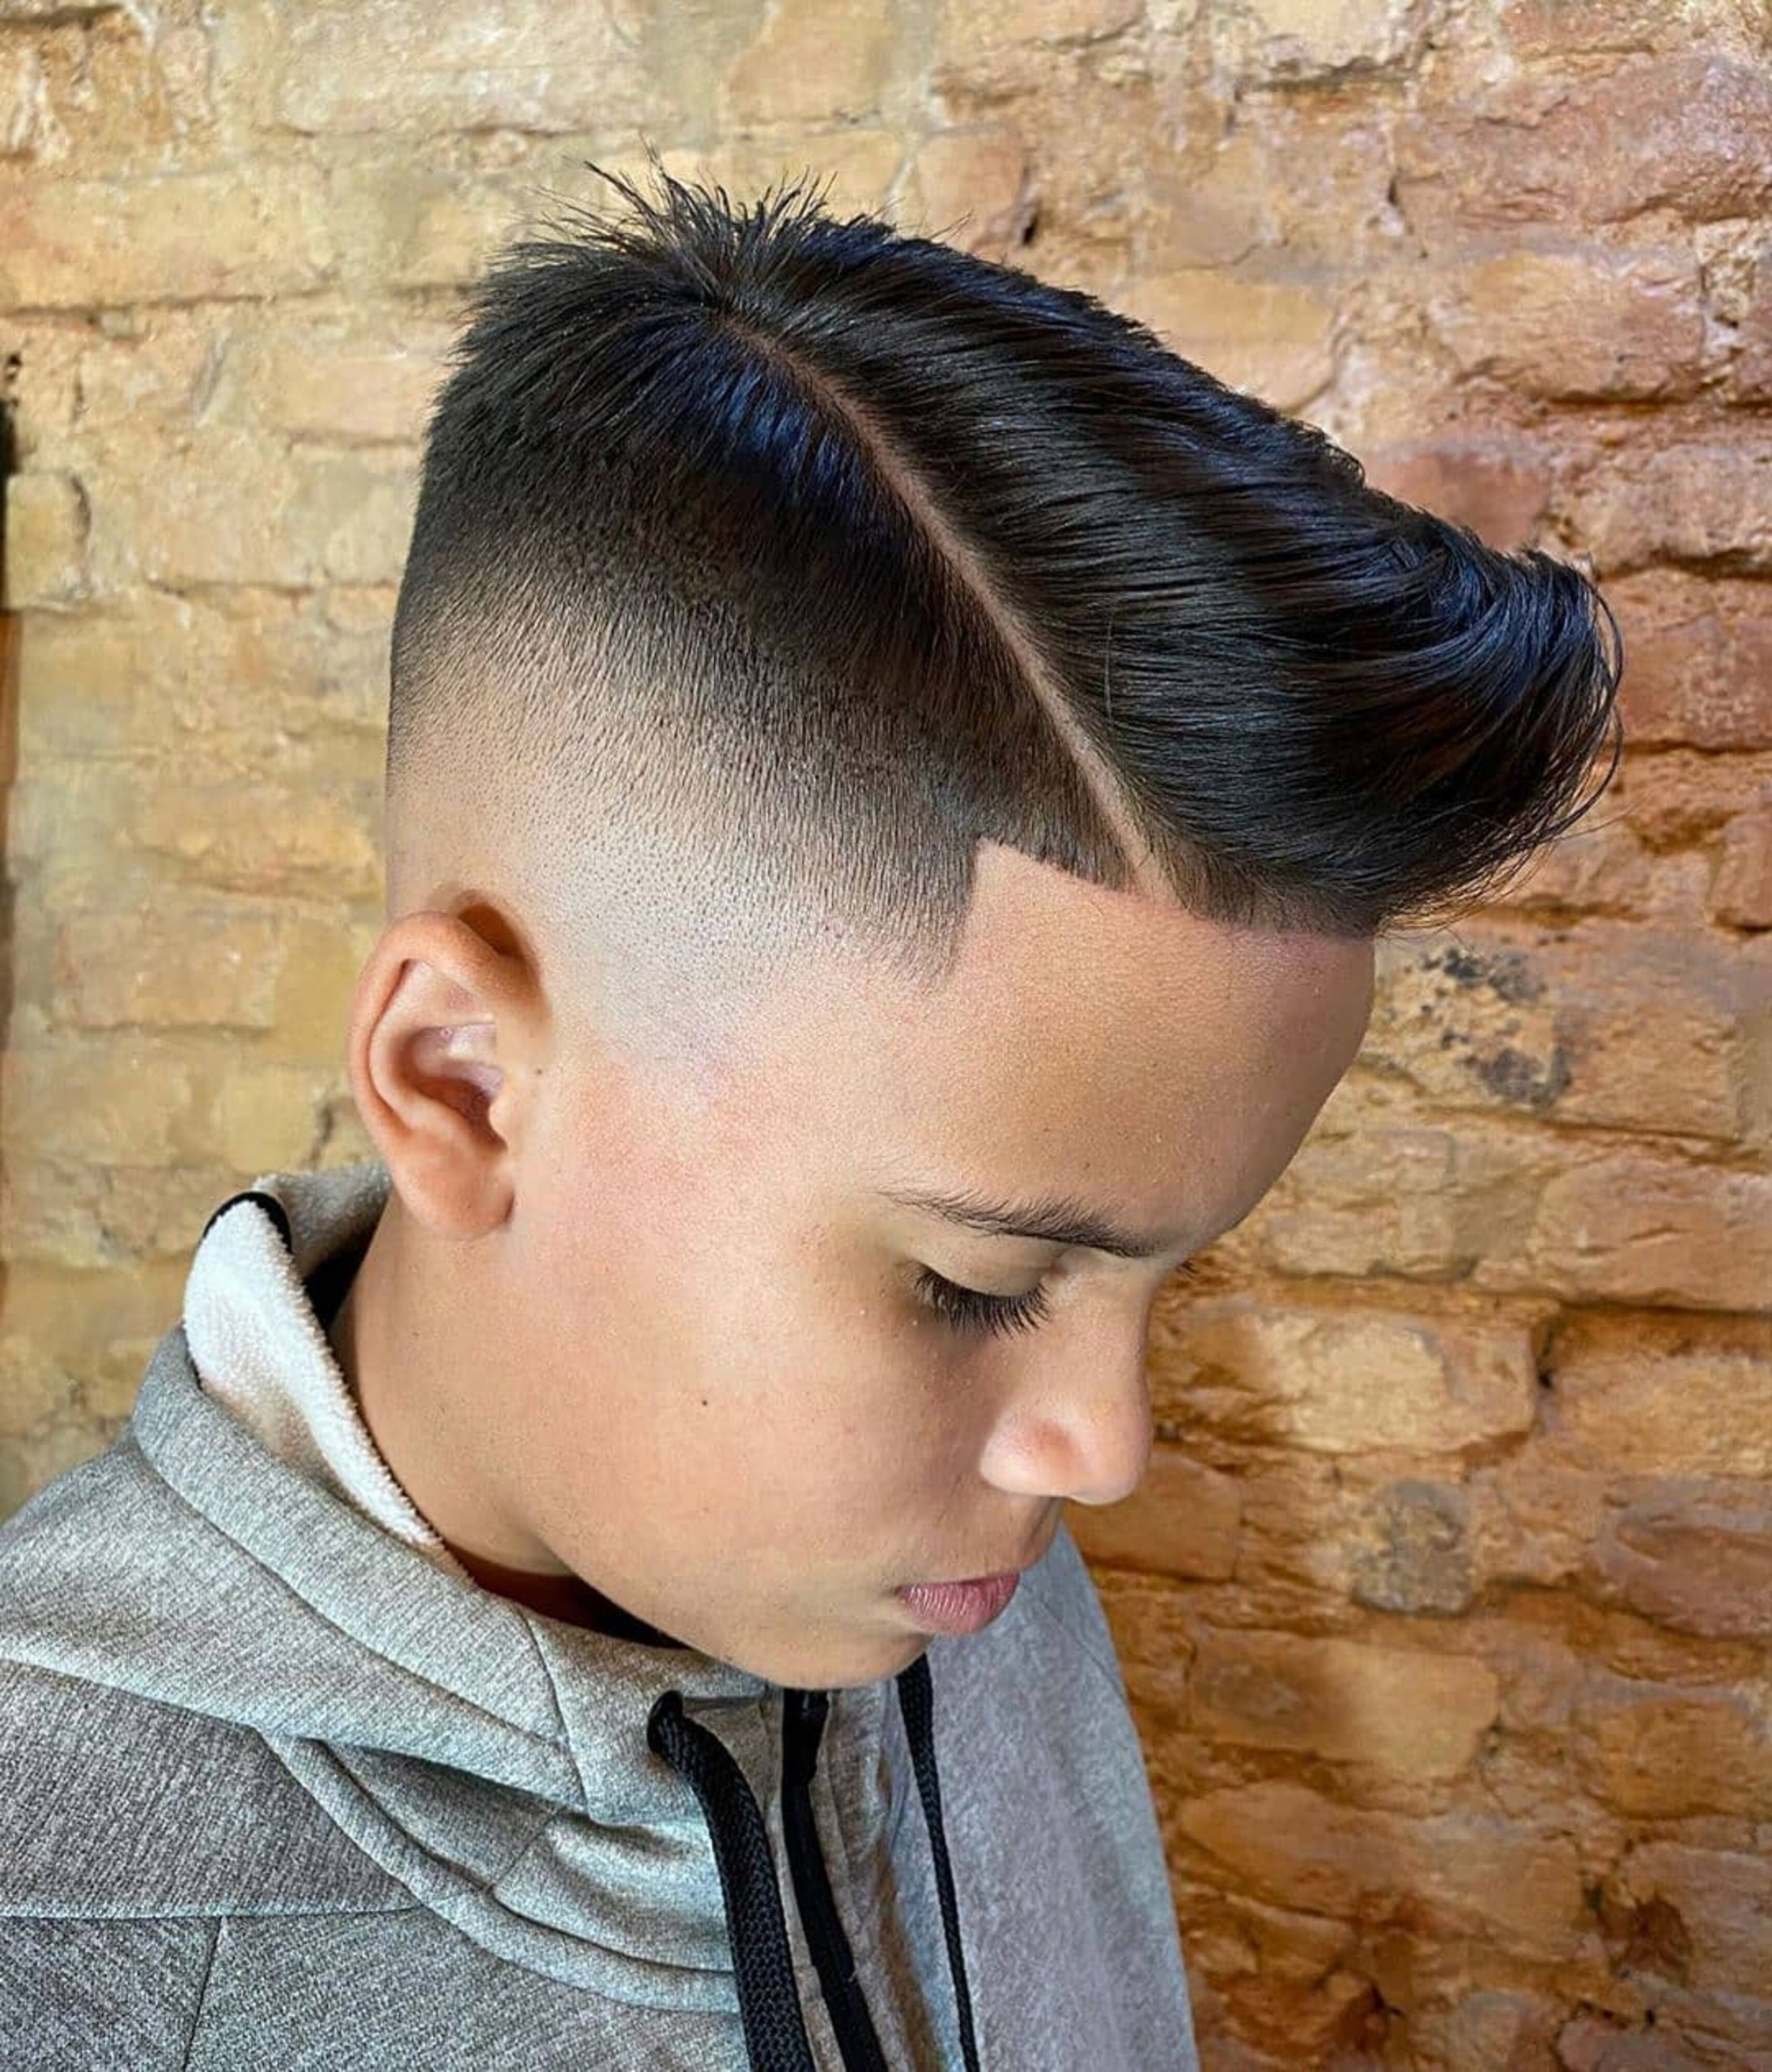 A trendy high-faded haircut for boys.